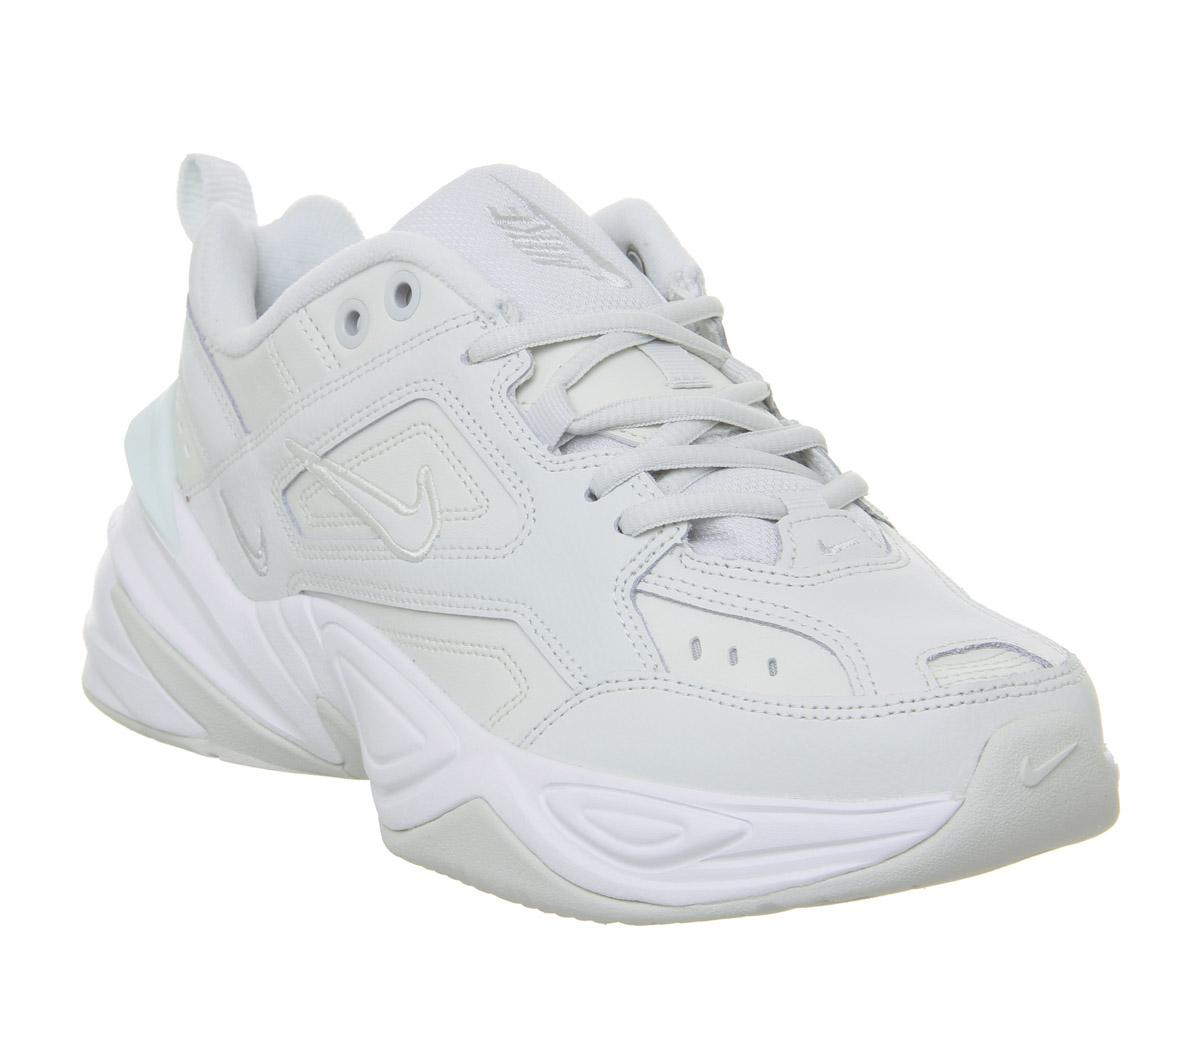 Nike M2k Tekno Trainers Spruce Aura Sail Summit White F Hers Trainers